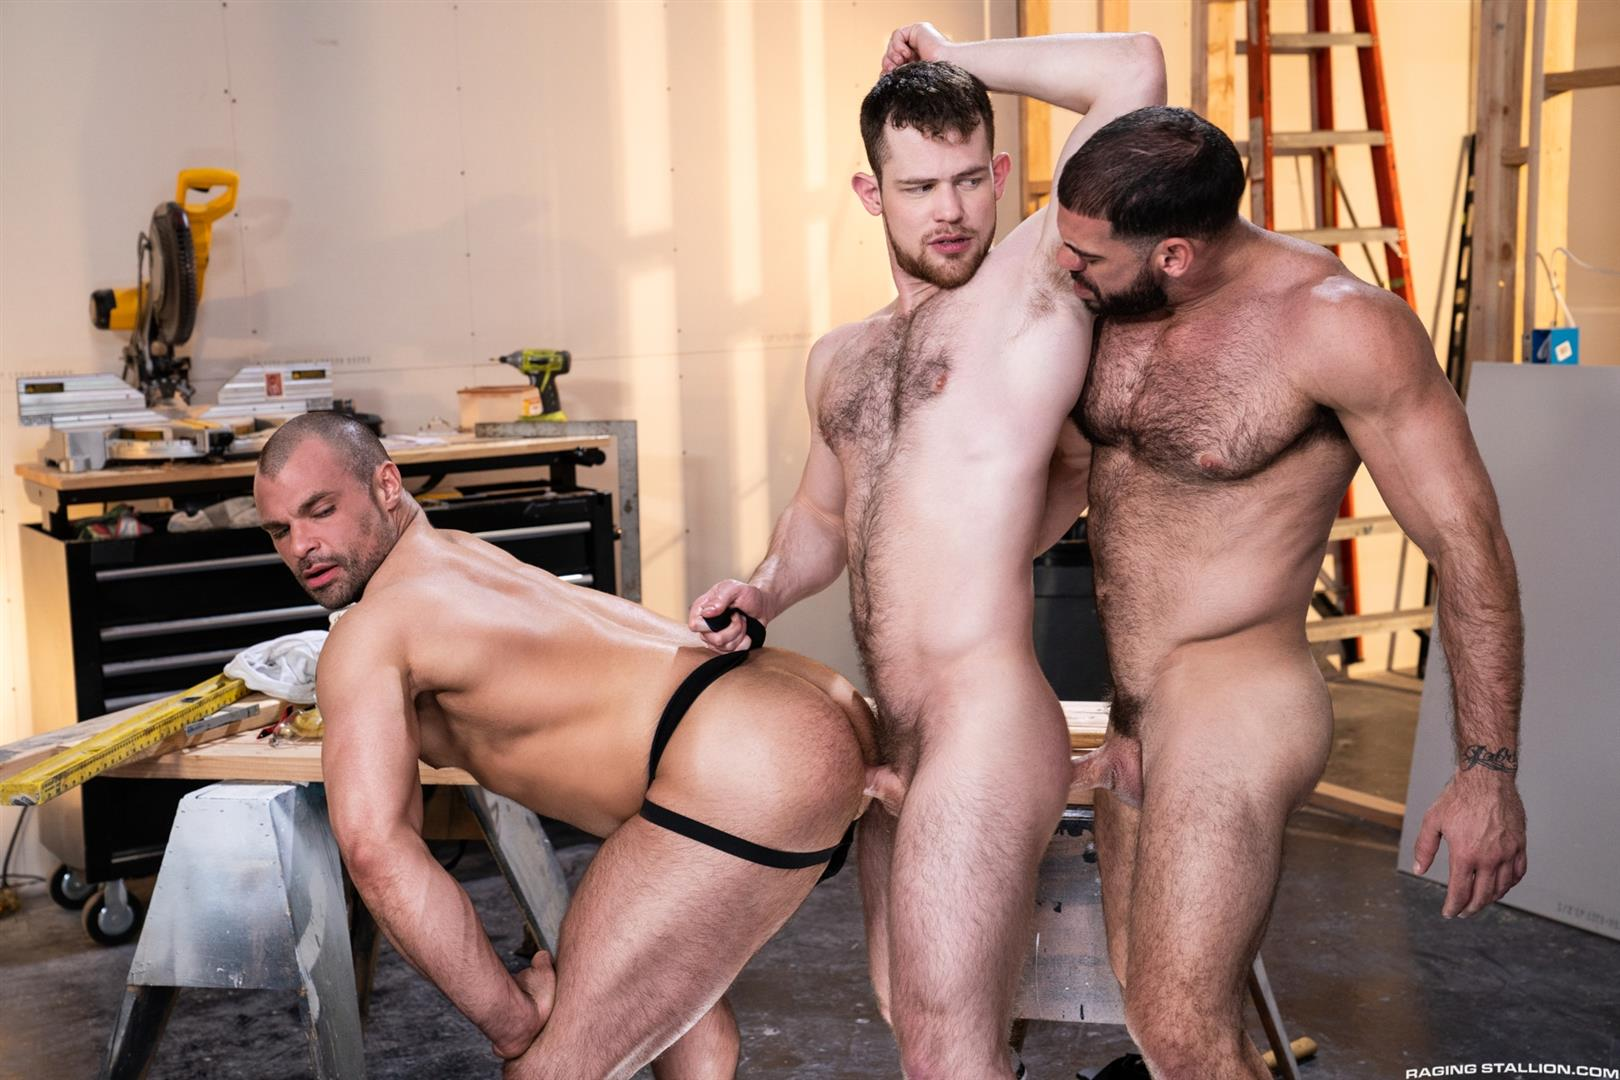 Raging-Stallion-Ricky-Larkin-and-Kurtis-Wolfe-and-Jaxx-Thanatos-Hairy-Muscle-Bareback-11 Hairy Muscle Hunks Ricky Larkin, Kurtis Wolfe and Jaxx Thanatos Bareback Fucking On The Job Site